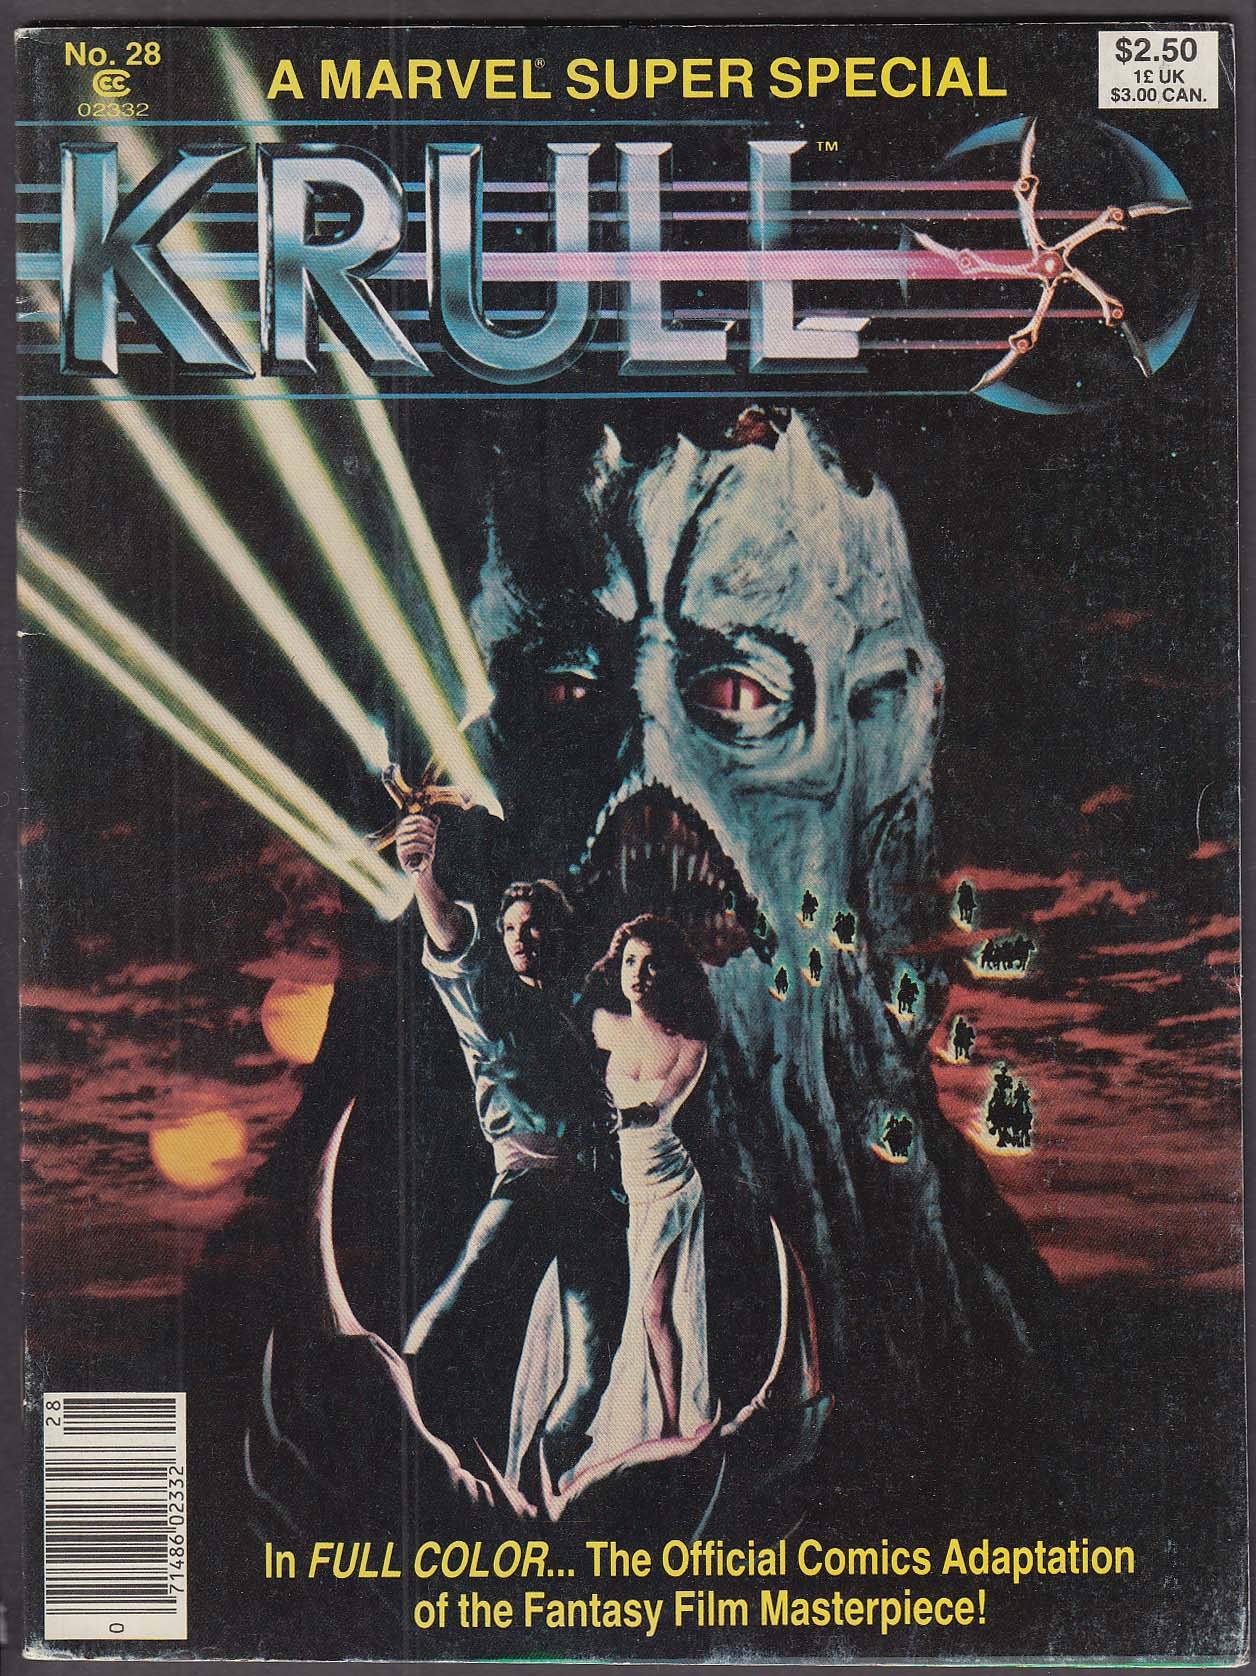 Image for Marvel Super Special #28 KRULL movie tie-in comic book 1983